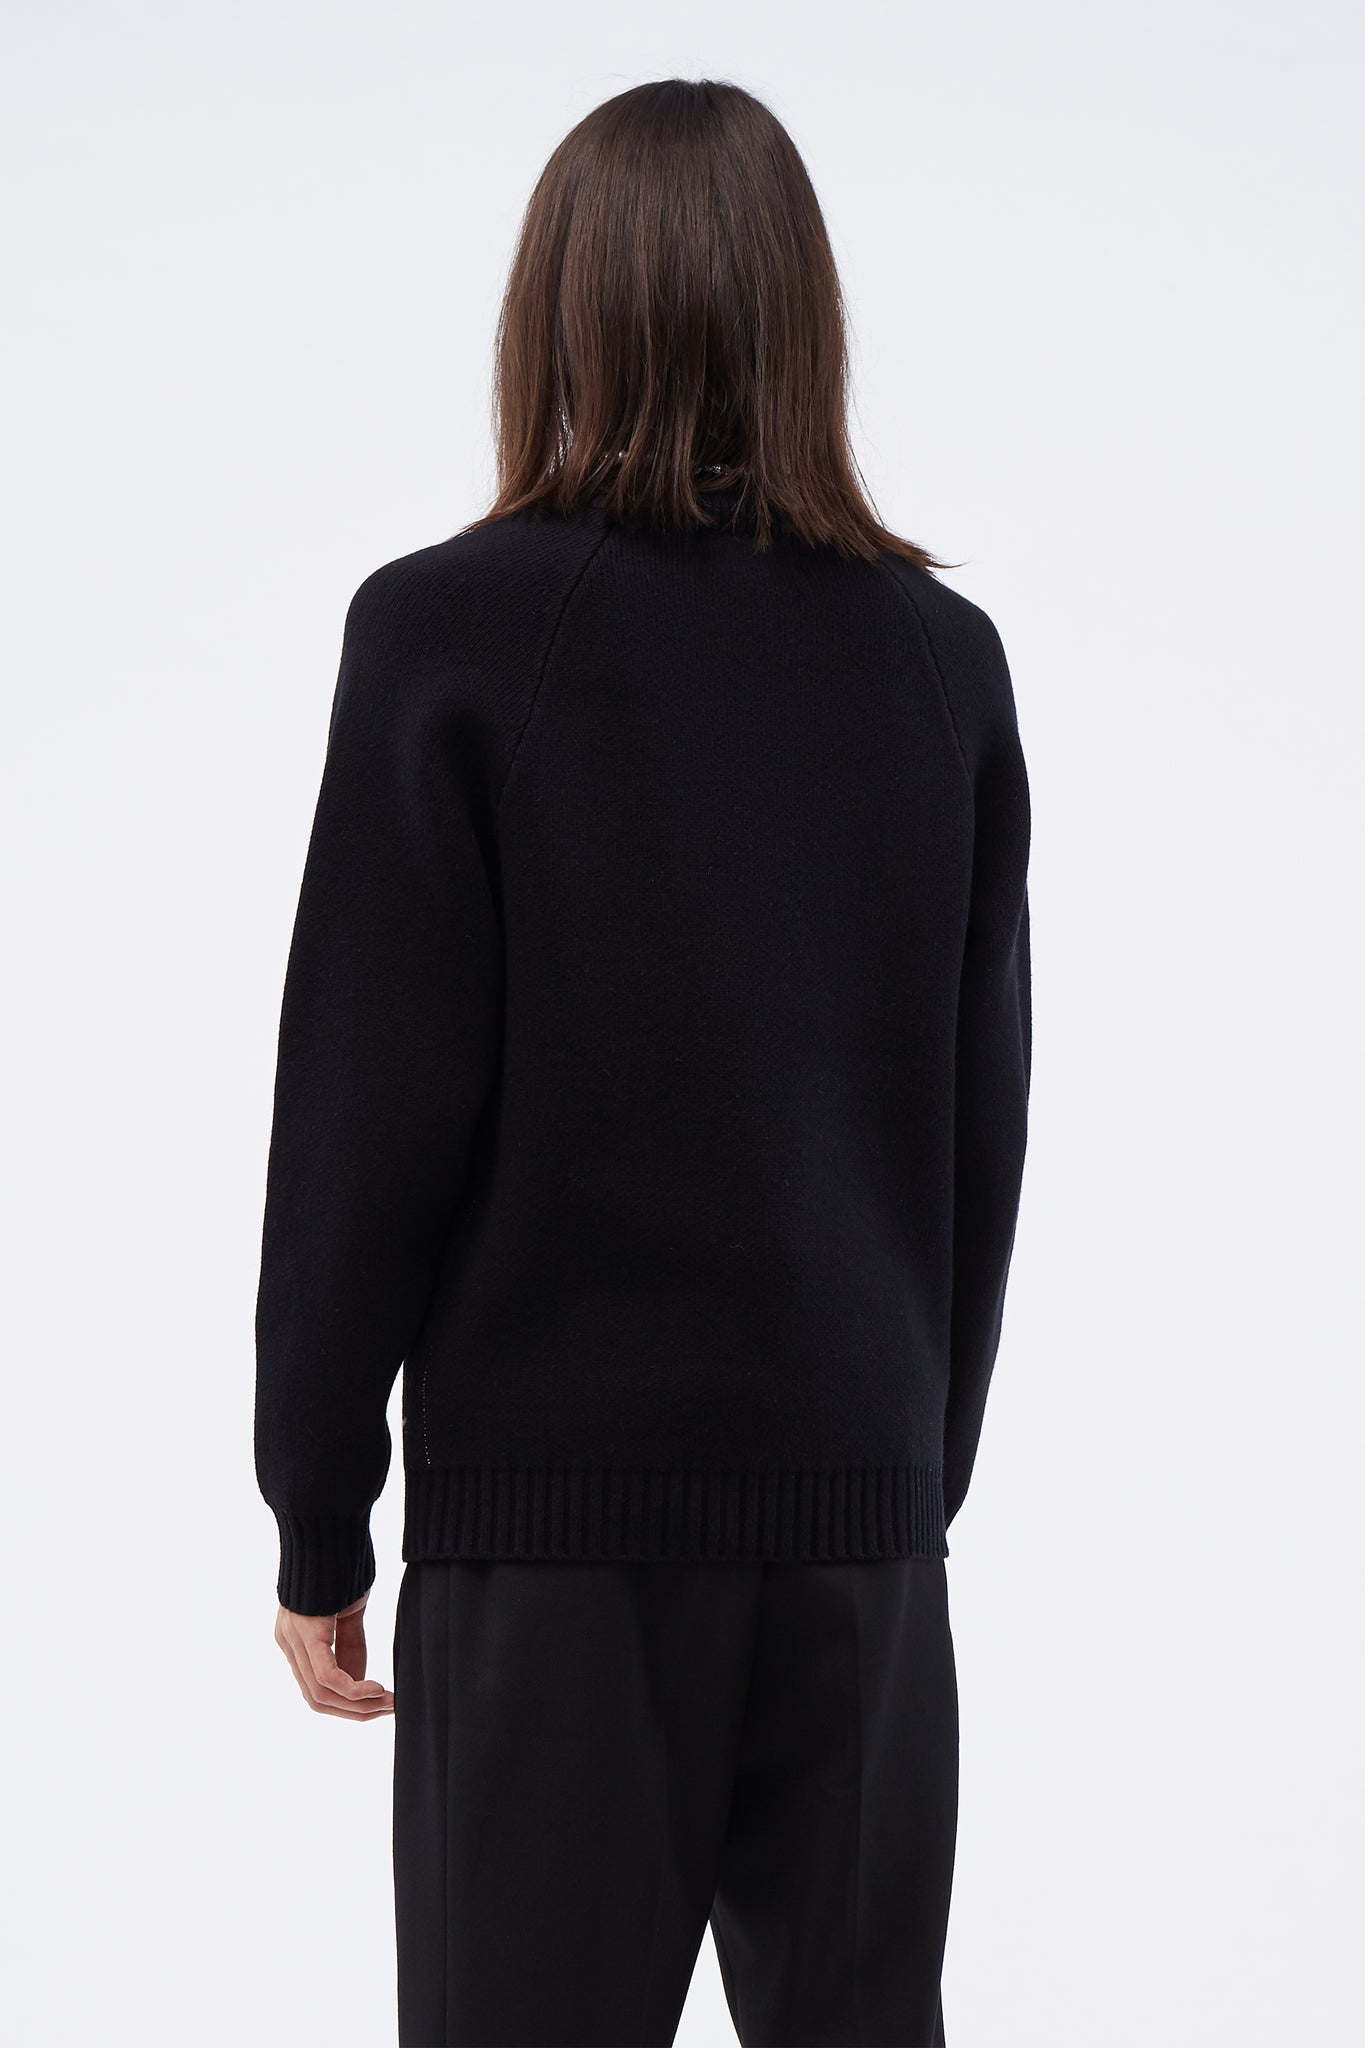 Turtleneck Knit Top Black